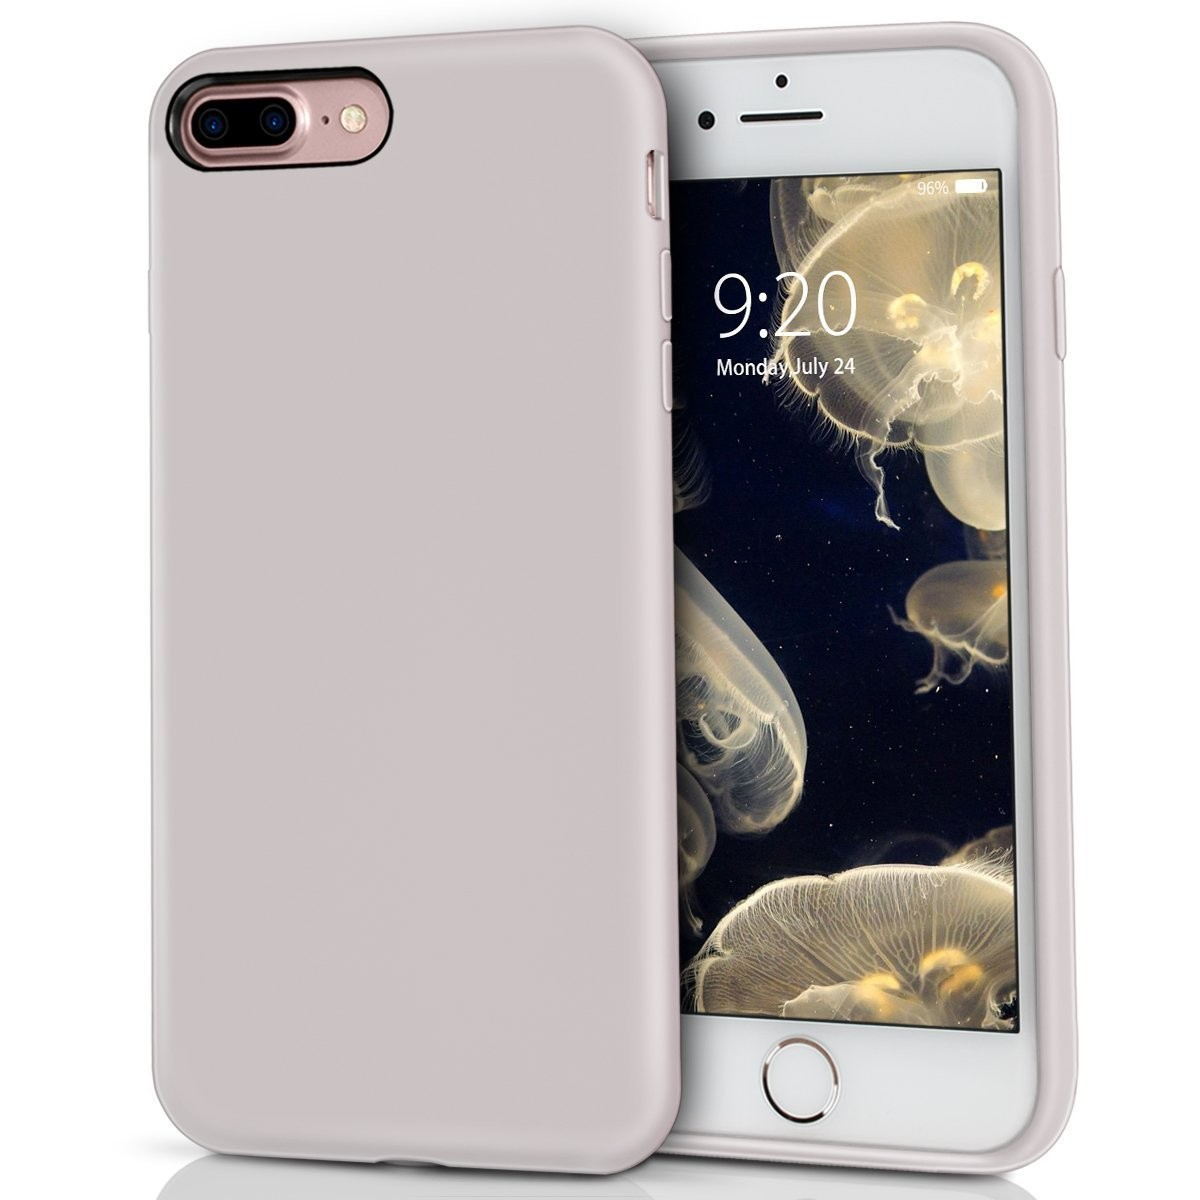 big sale e900a d6fdd iPhone 8 Plus Silicone Case, iPhone 7 Plus silicone case, Milprox Pretty  Series Liquid Silicone Gel Rubber Shockproof Case with Microfiber Cloth ...